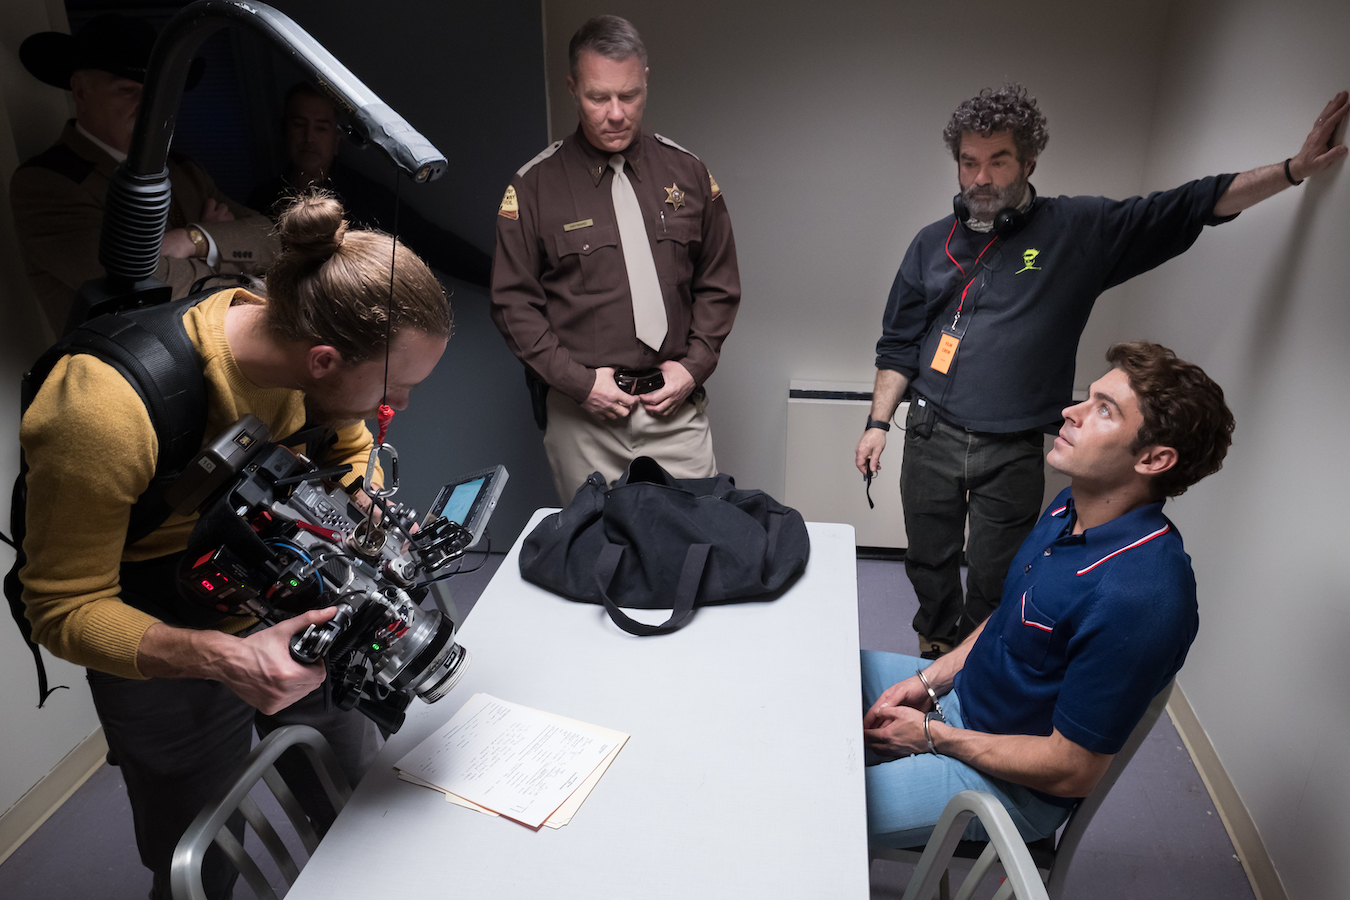 Joe Berlinger on the set of Extremely Wicked, Shockingly Evil and Vile